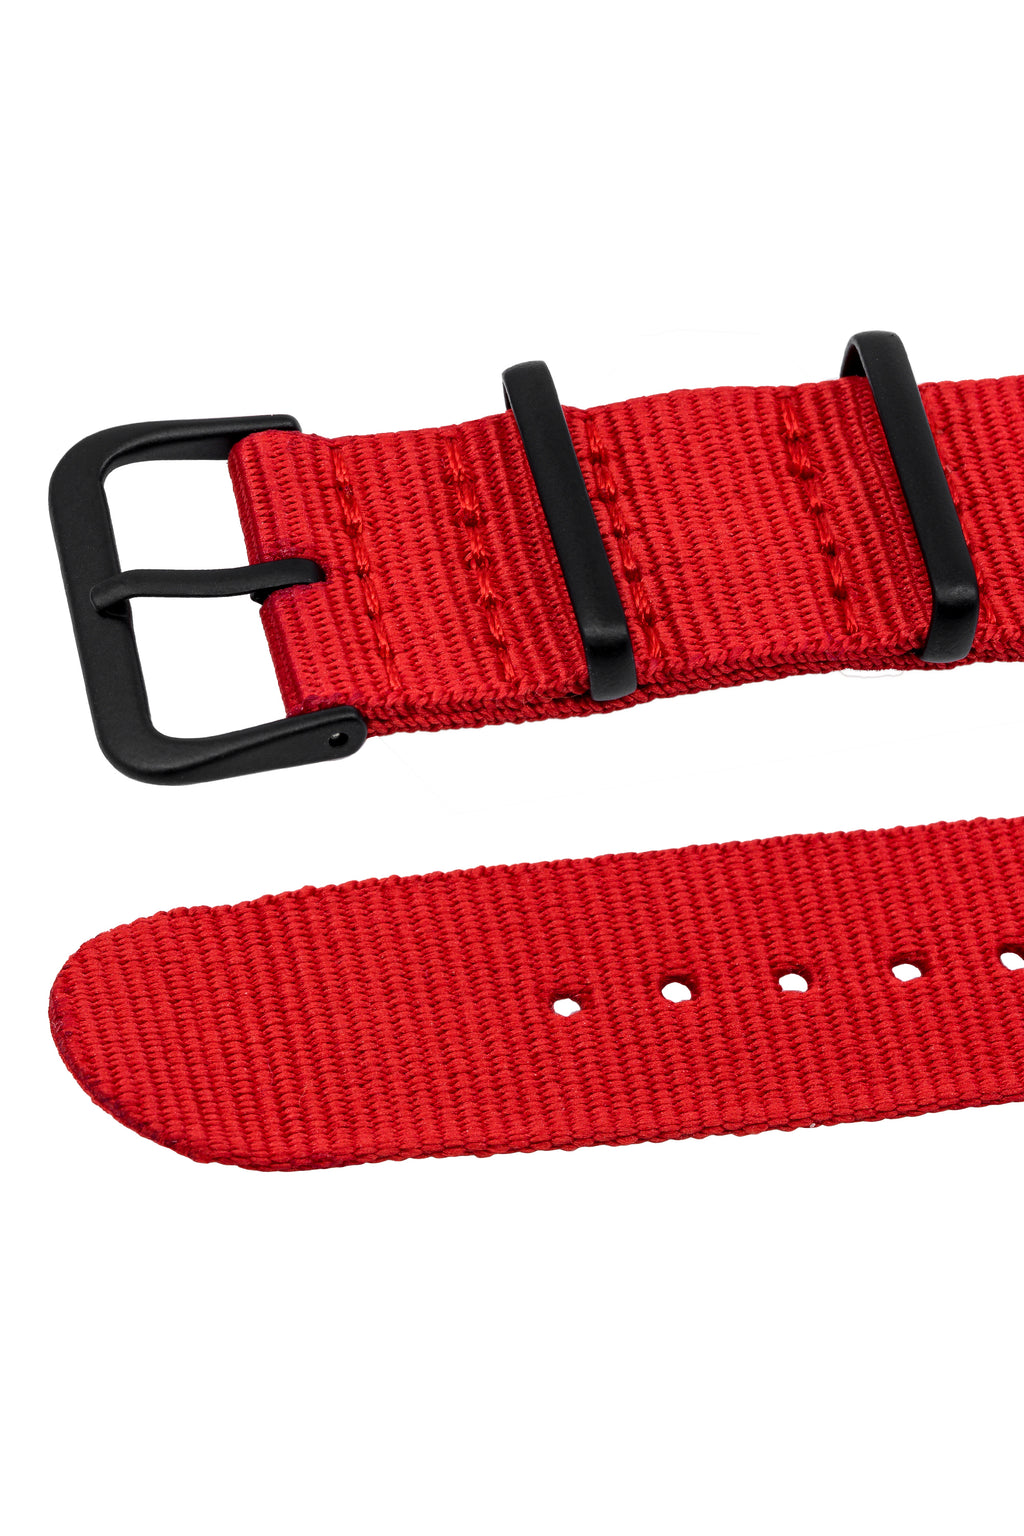 NATO Watch Straps in RED with PVD Buckle and Keepers